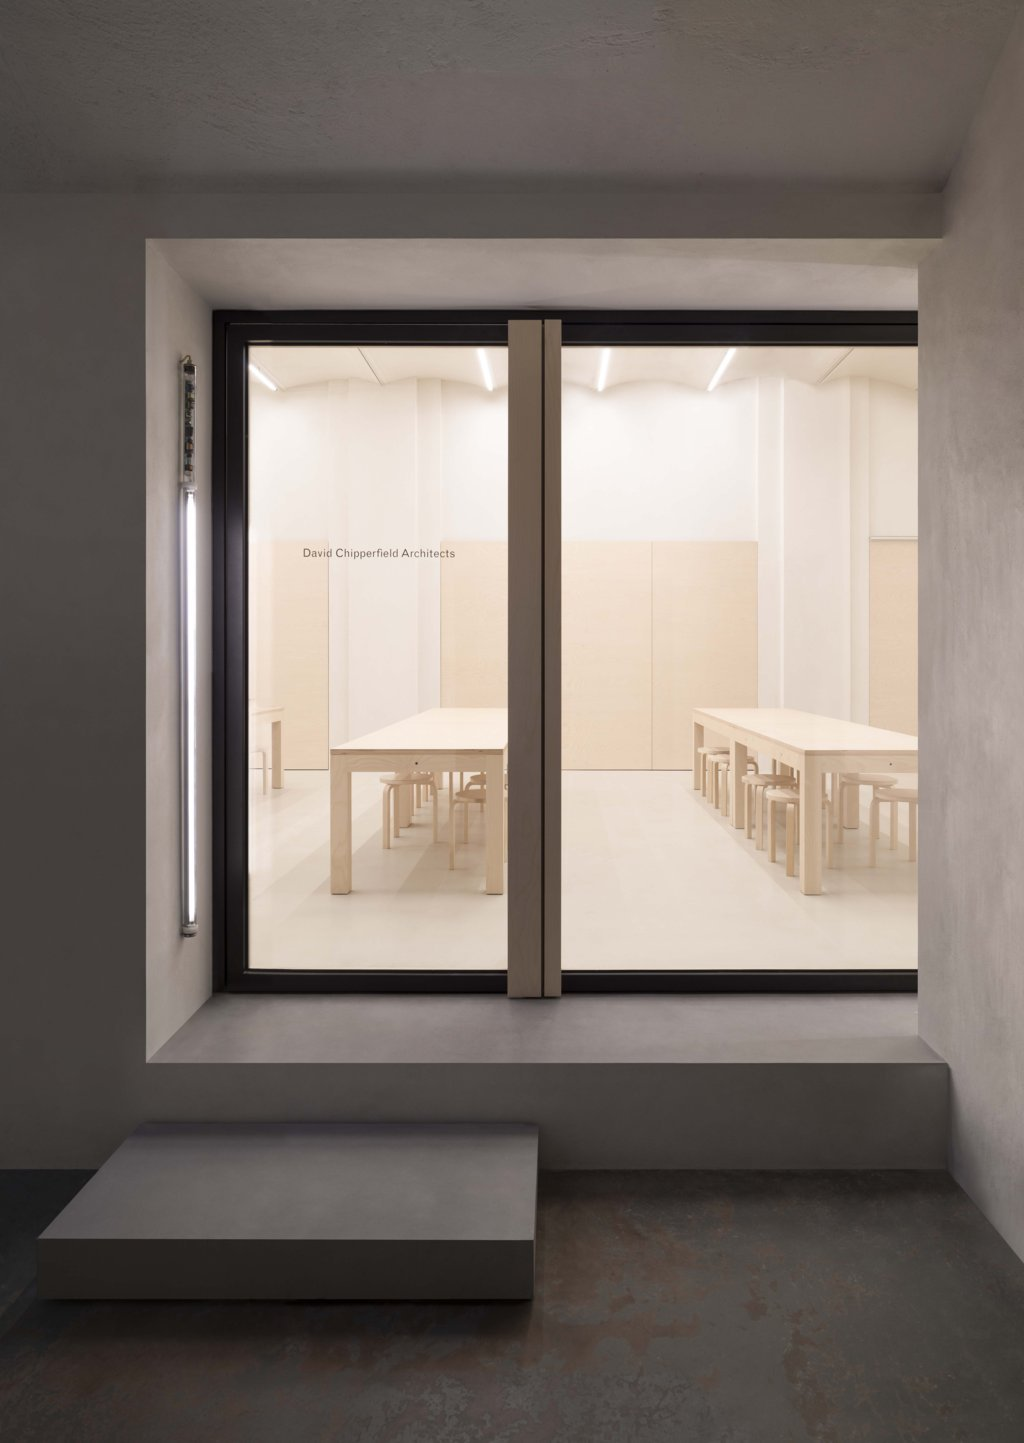 David Chipperfield Architects Milan office, the Atelier from the outside.